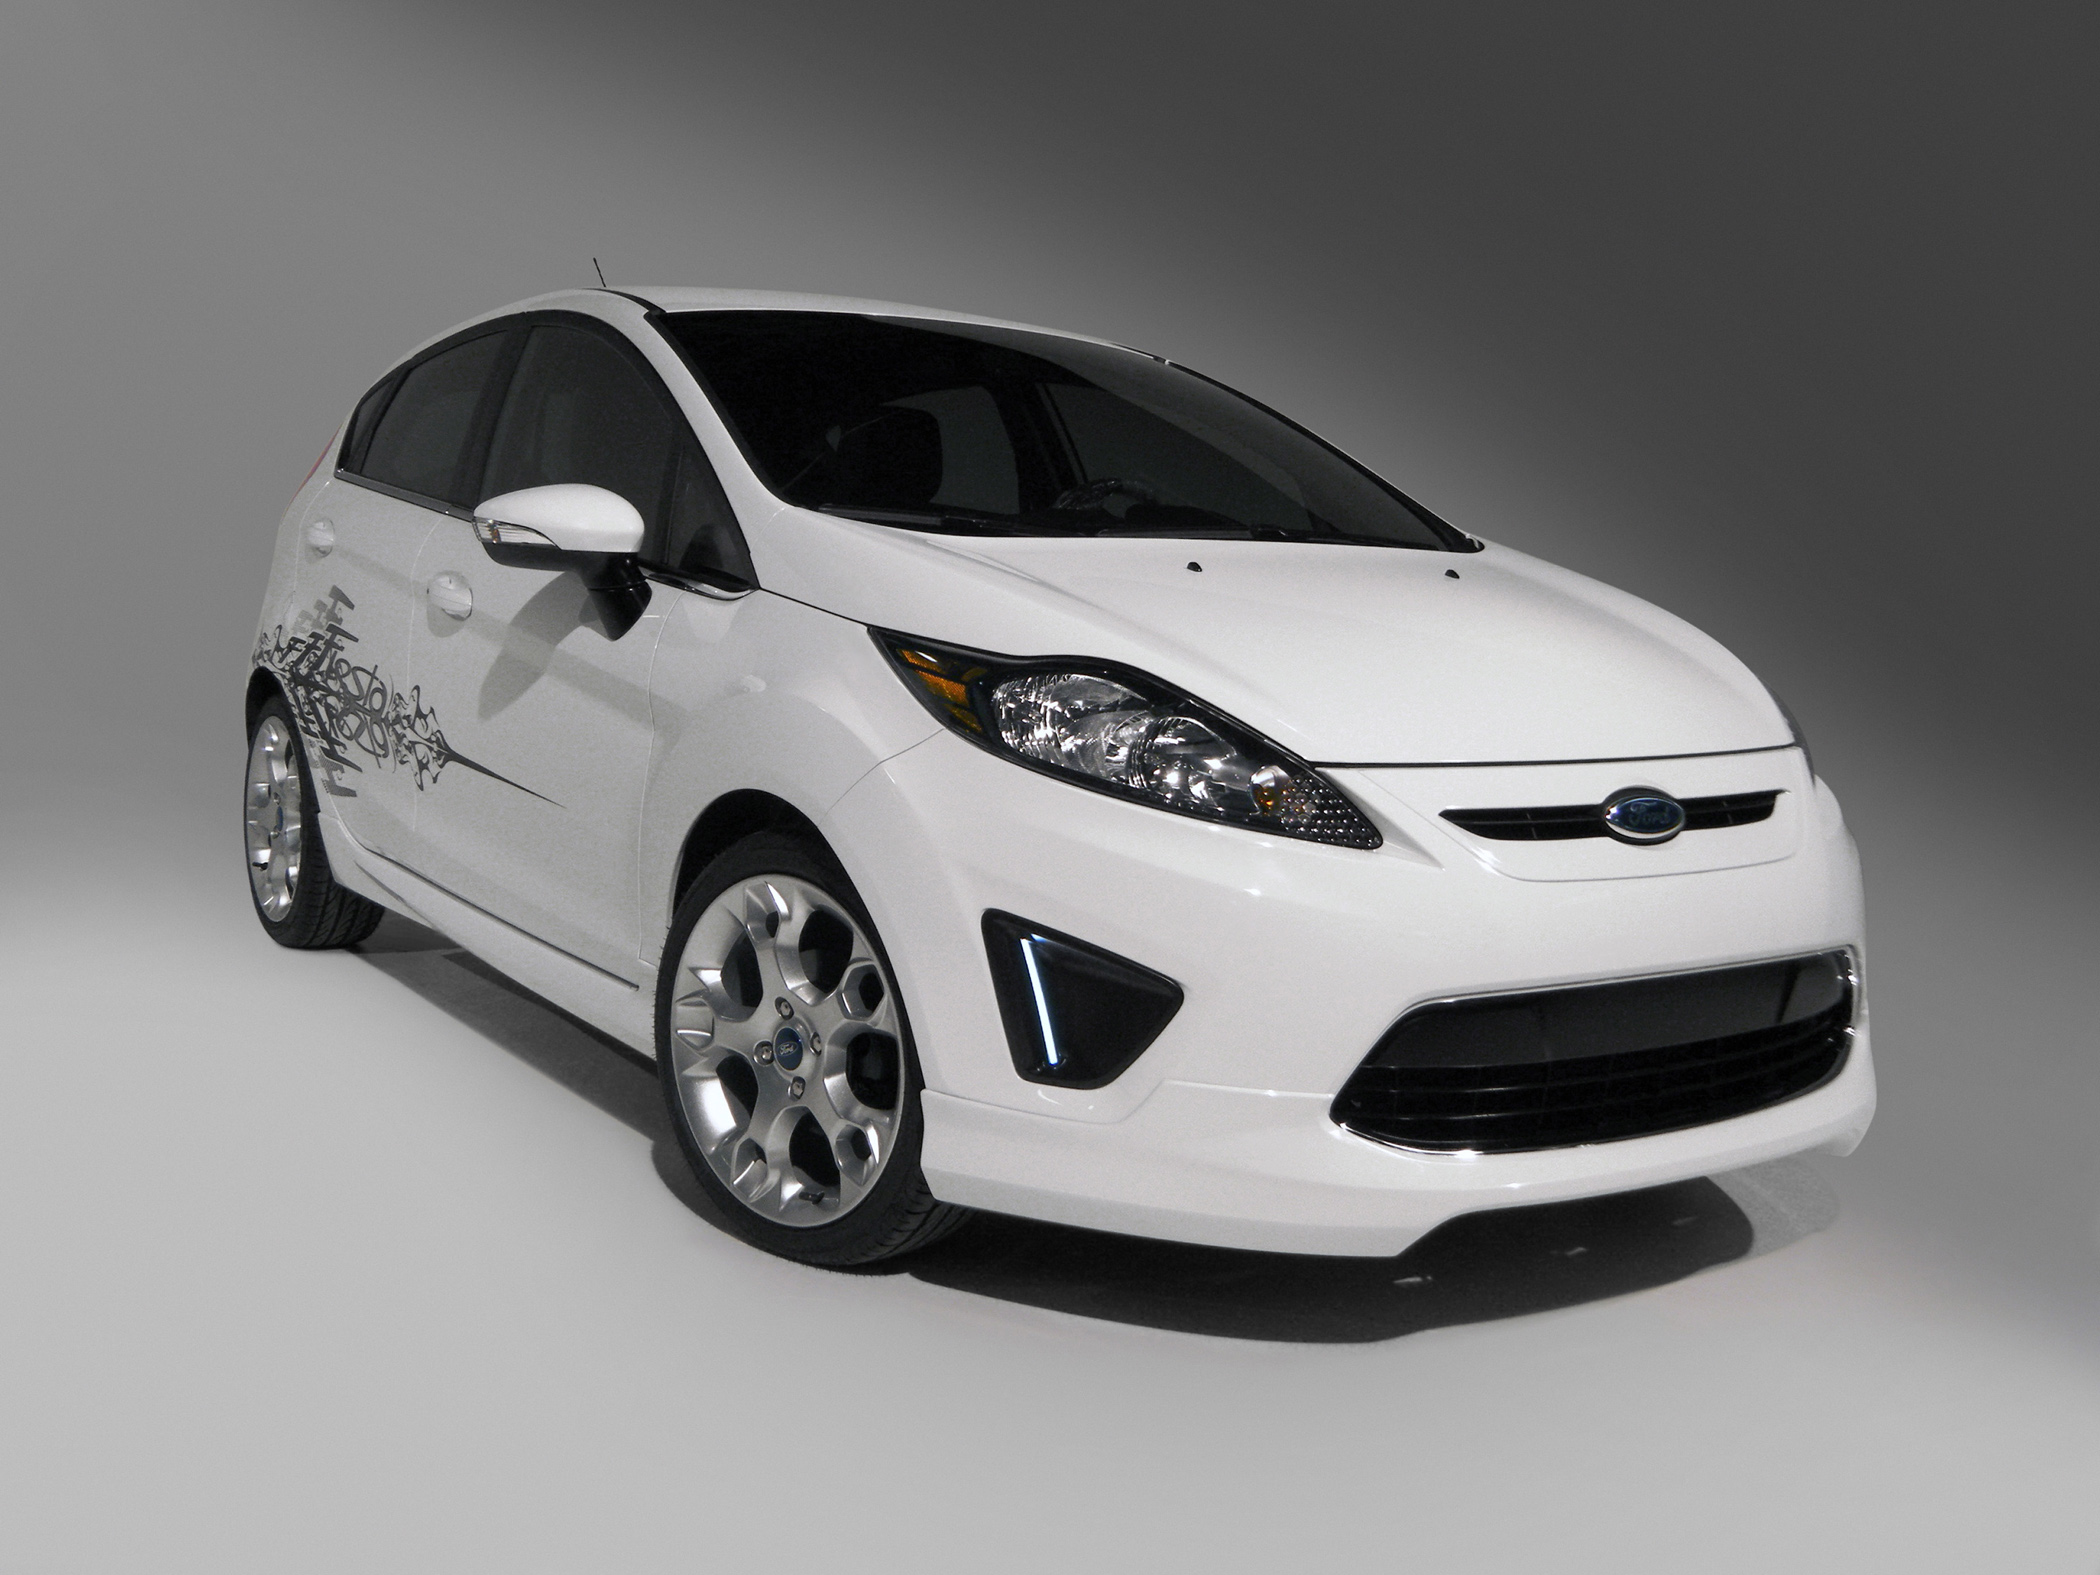 Manufacturer photo: The 2011 Ford Fiesta offers buyers an extensive range of vibrant color options called Lime Squeeze, Yellow Blaze -- even ordinary, yet popular colors, such as Oxford White.